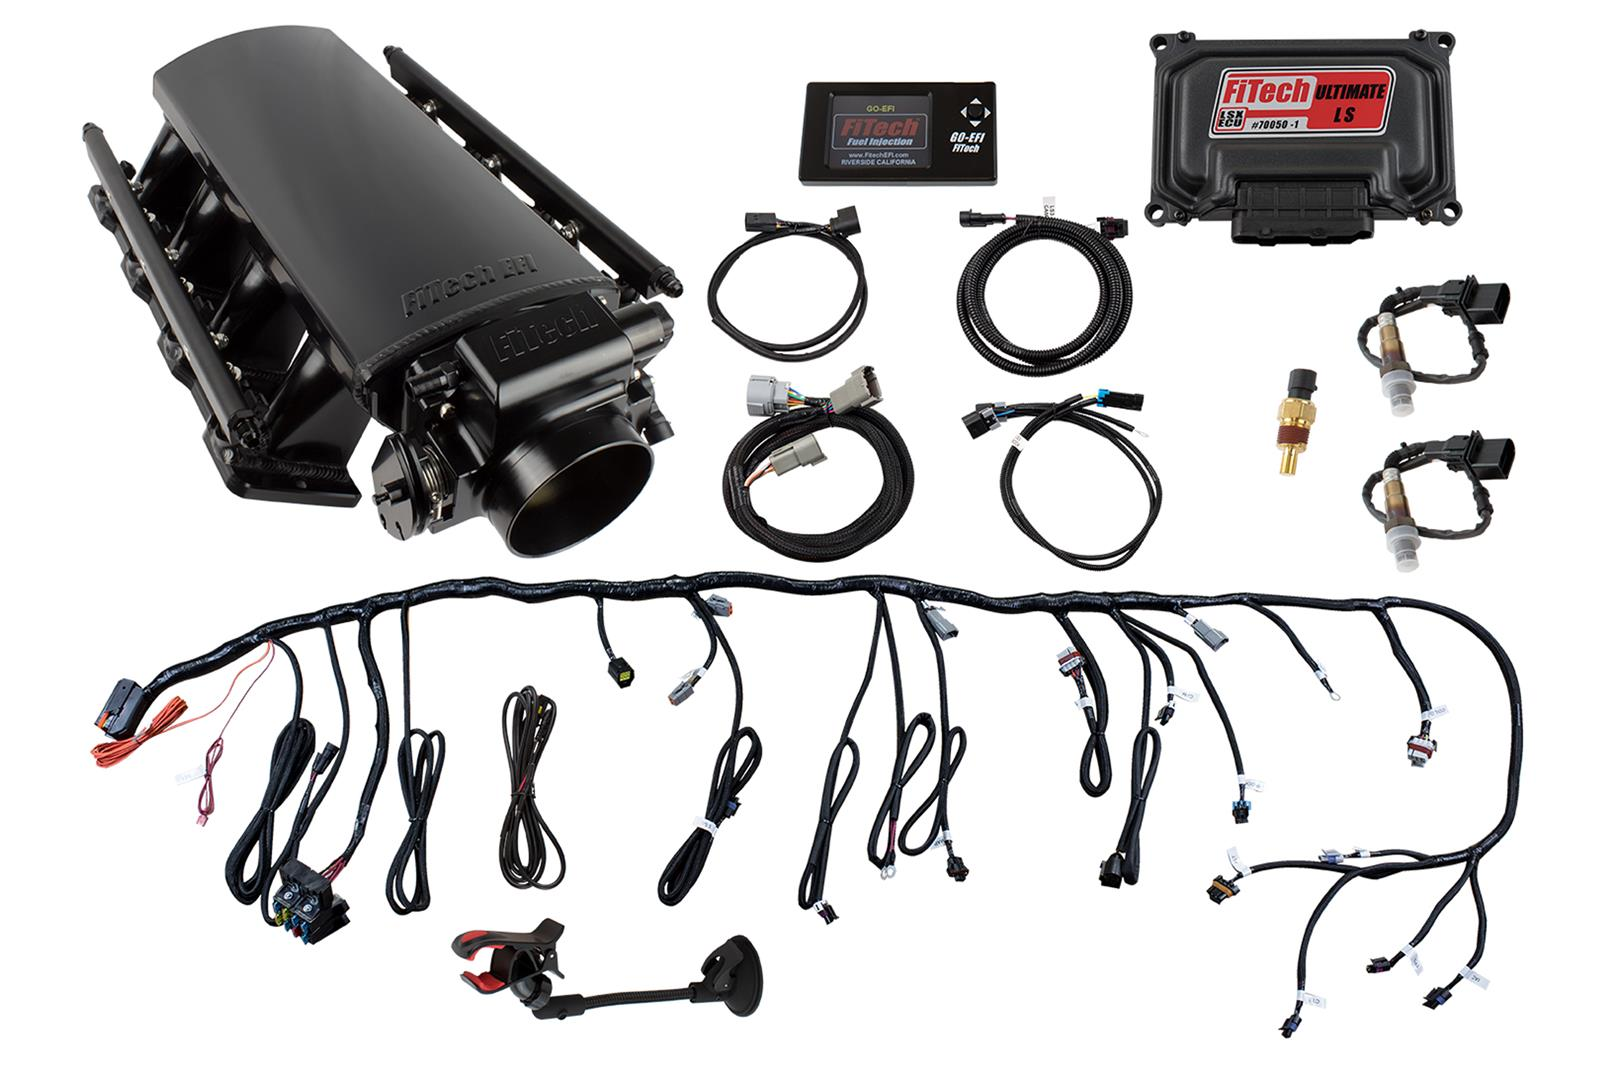 Fitech Ultimate Ls Efi 750 Hp Fuel Injection Systems 70004 Free Wiring Harness Kit For 5 0 Engine 2 Shipping On Orders Over 99 At Summit Racing